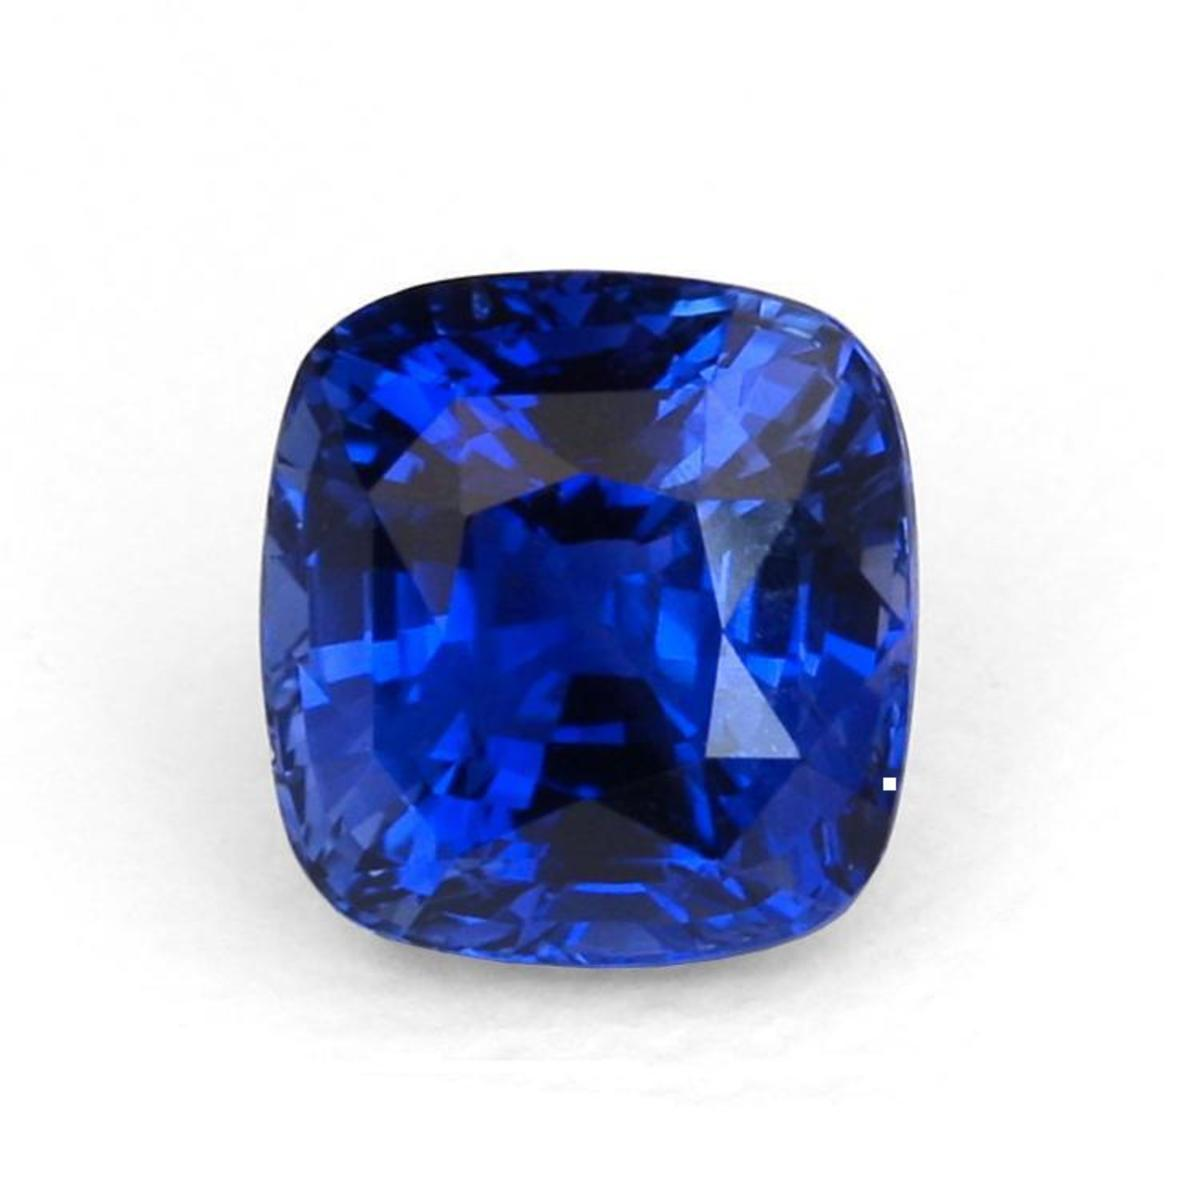 Neelam or Blue Sapphire Stone - The Gemstone of Saturn